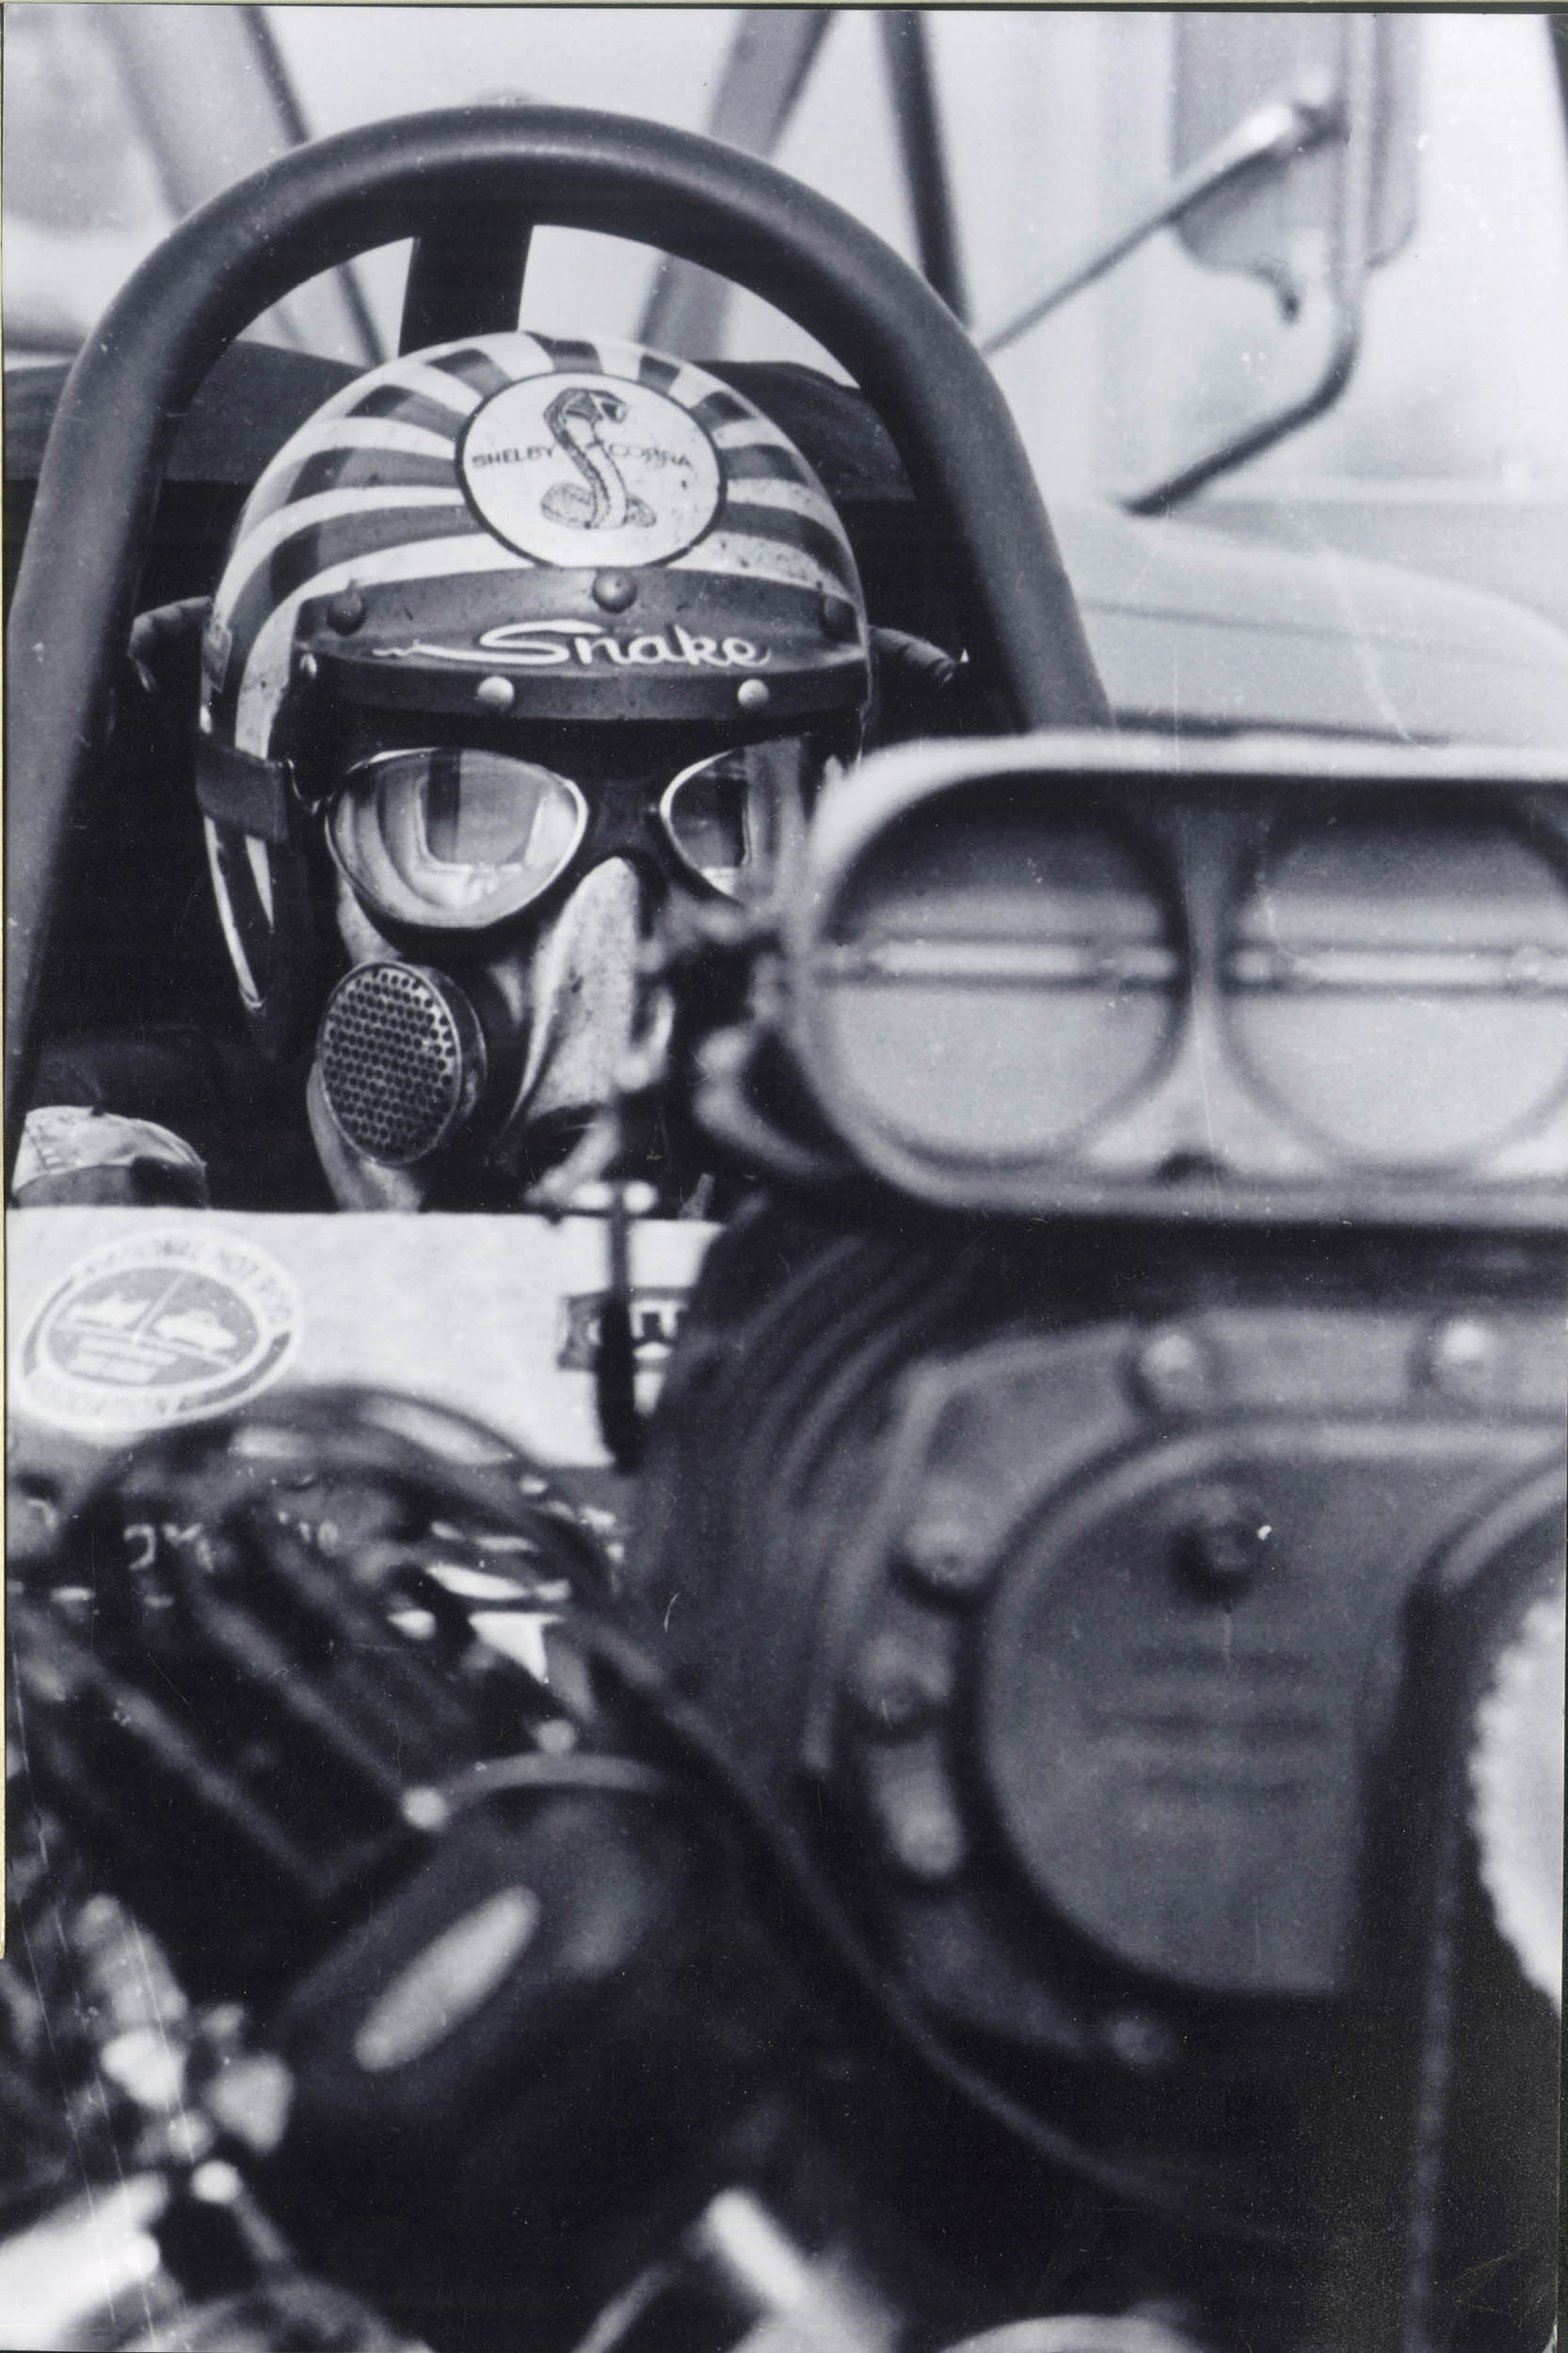 Prudhomme raced a Ford-powered dragster in '67 and '68, sponsored by none other than Carroll Shelby. The two men hit it off and would work together again.